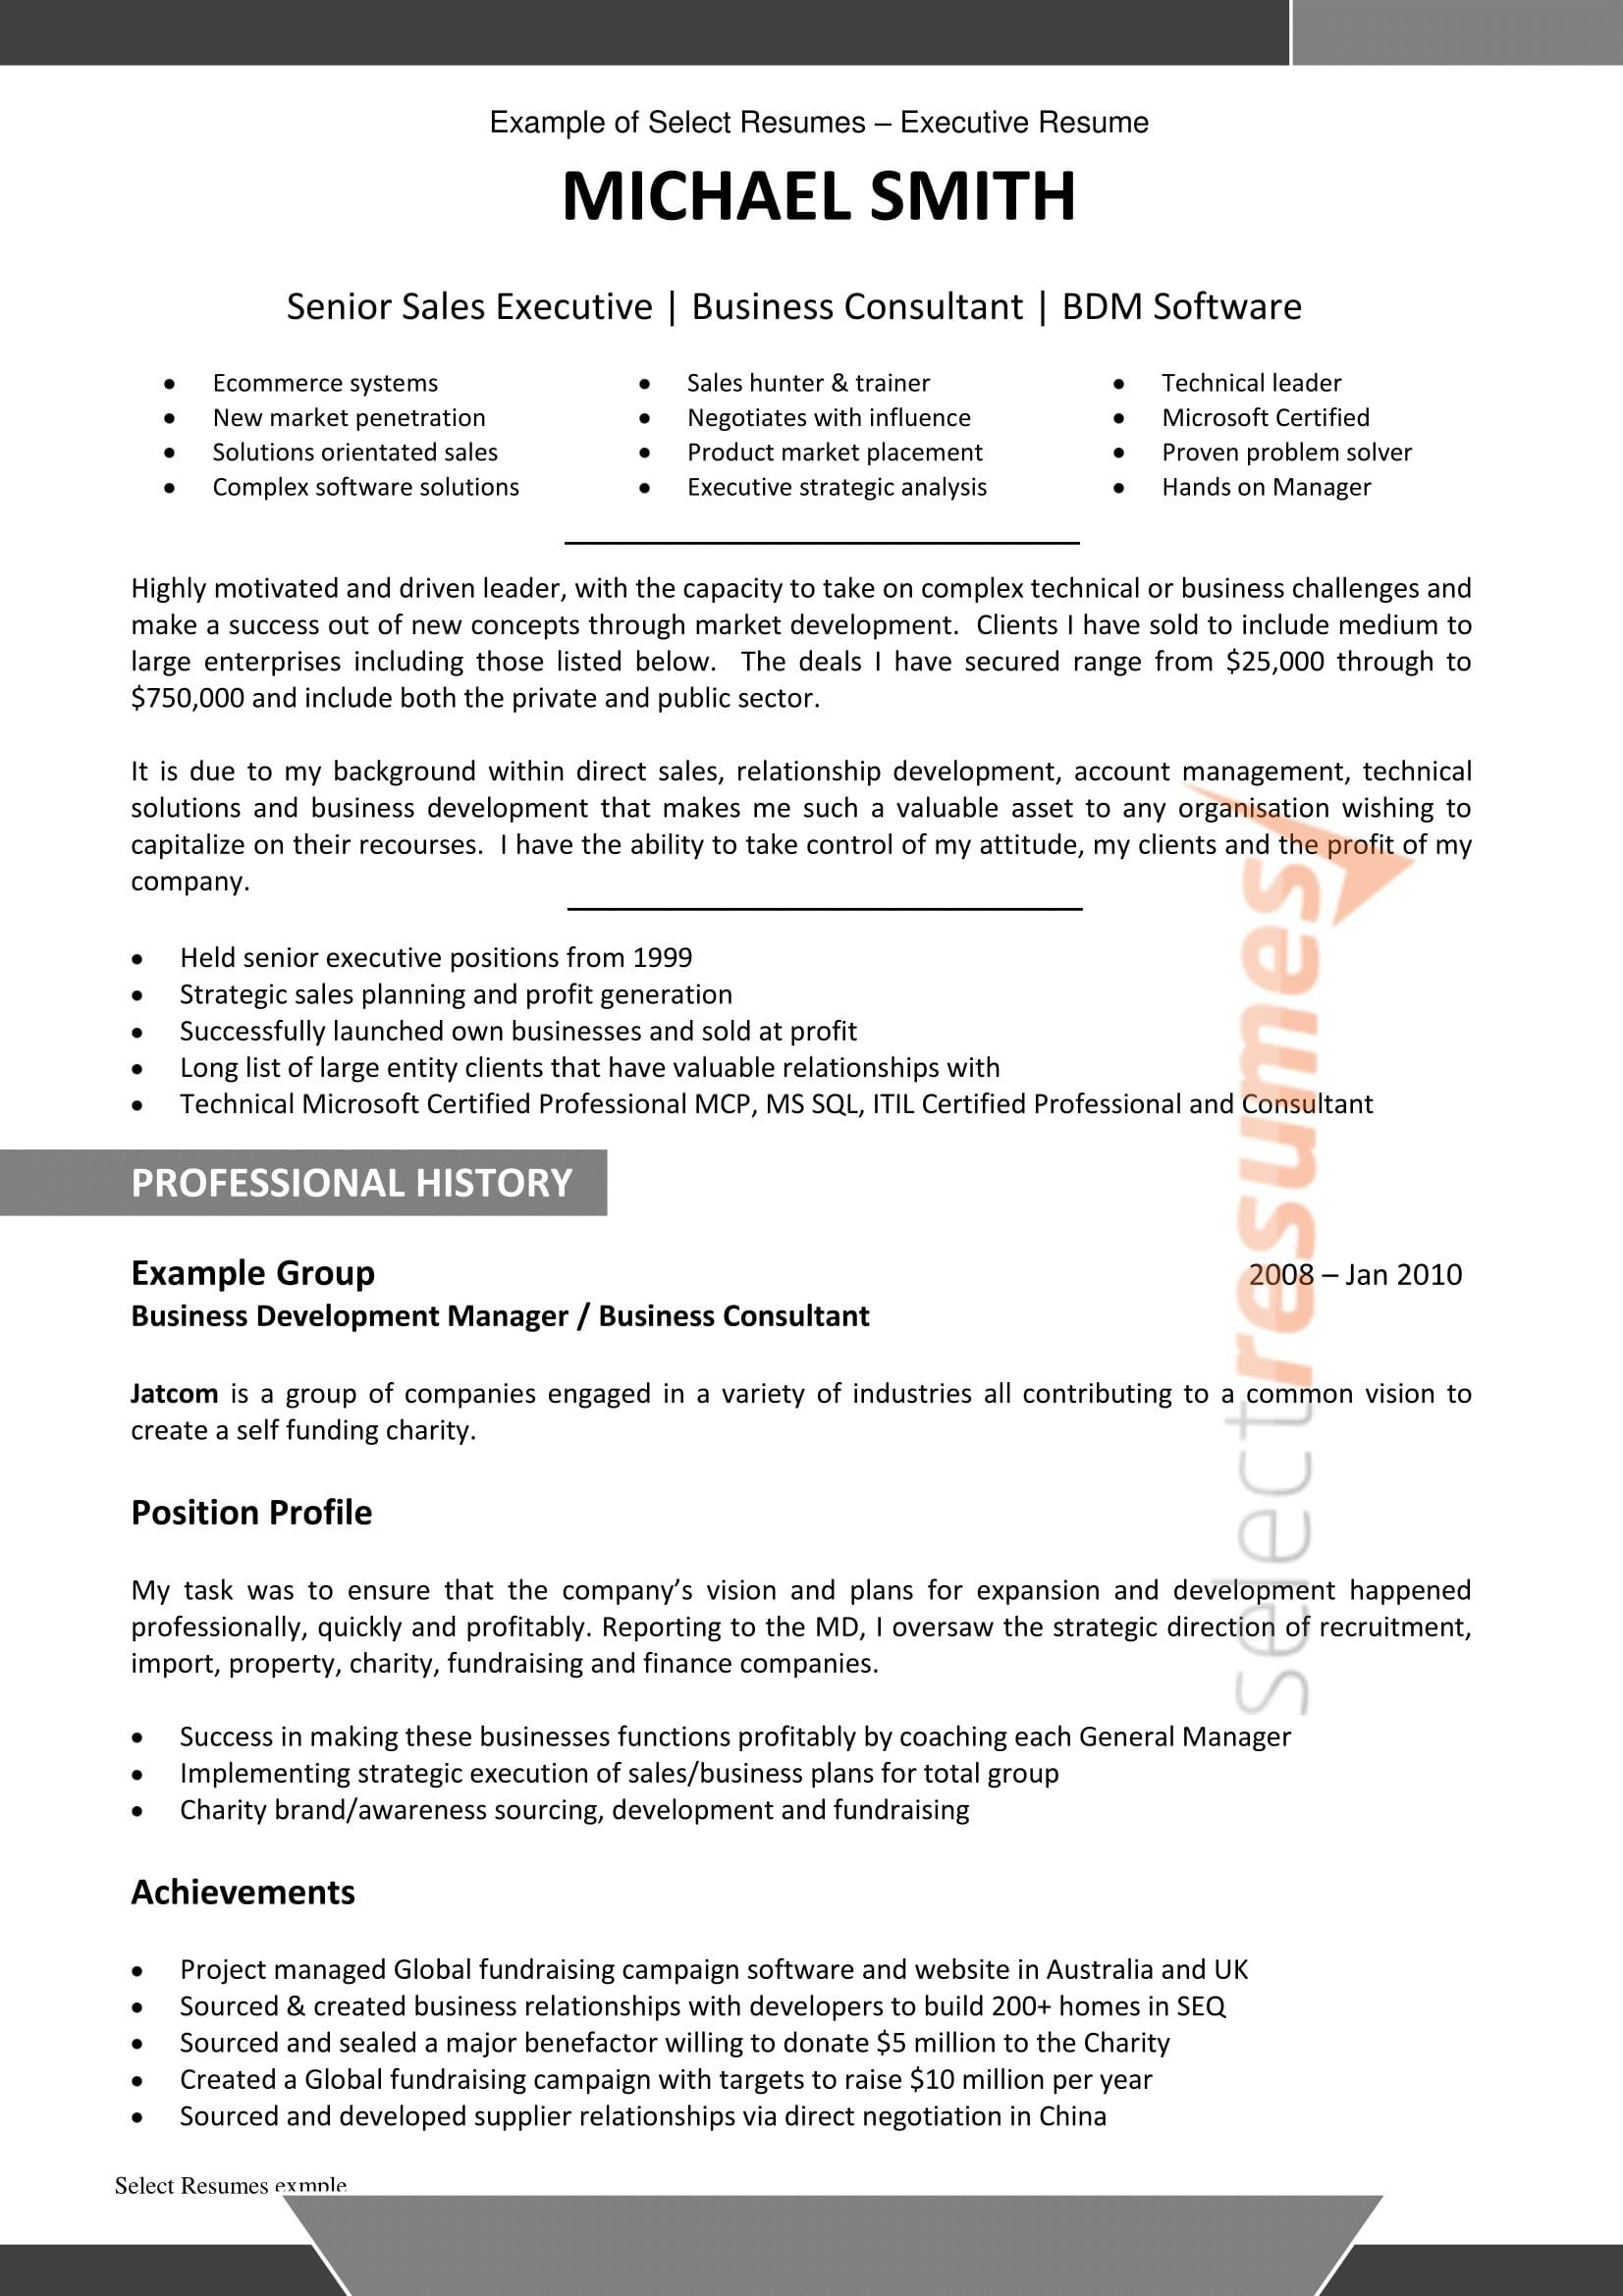 professional resume writing service top and essays services trusted by students companies Resume Resume Writing Companies